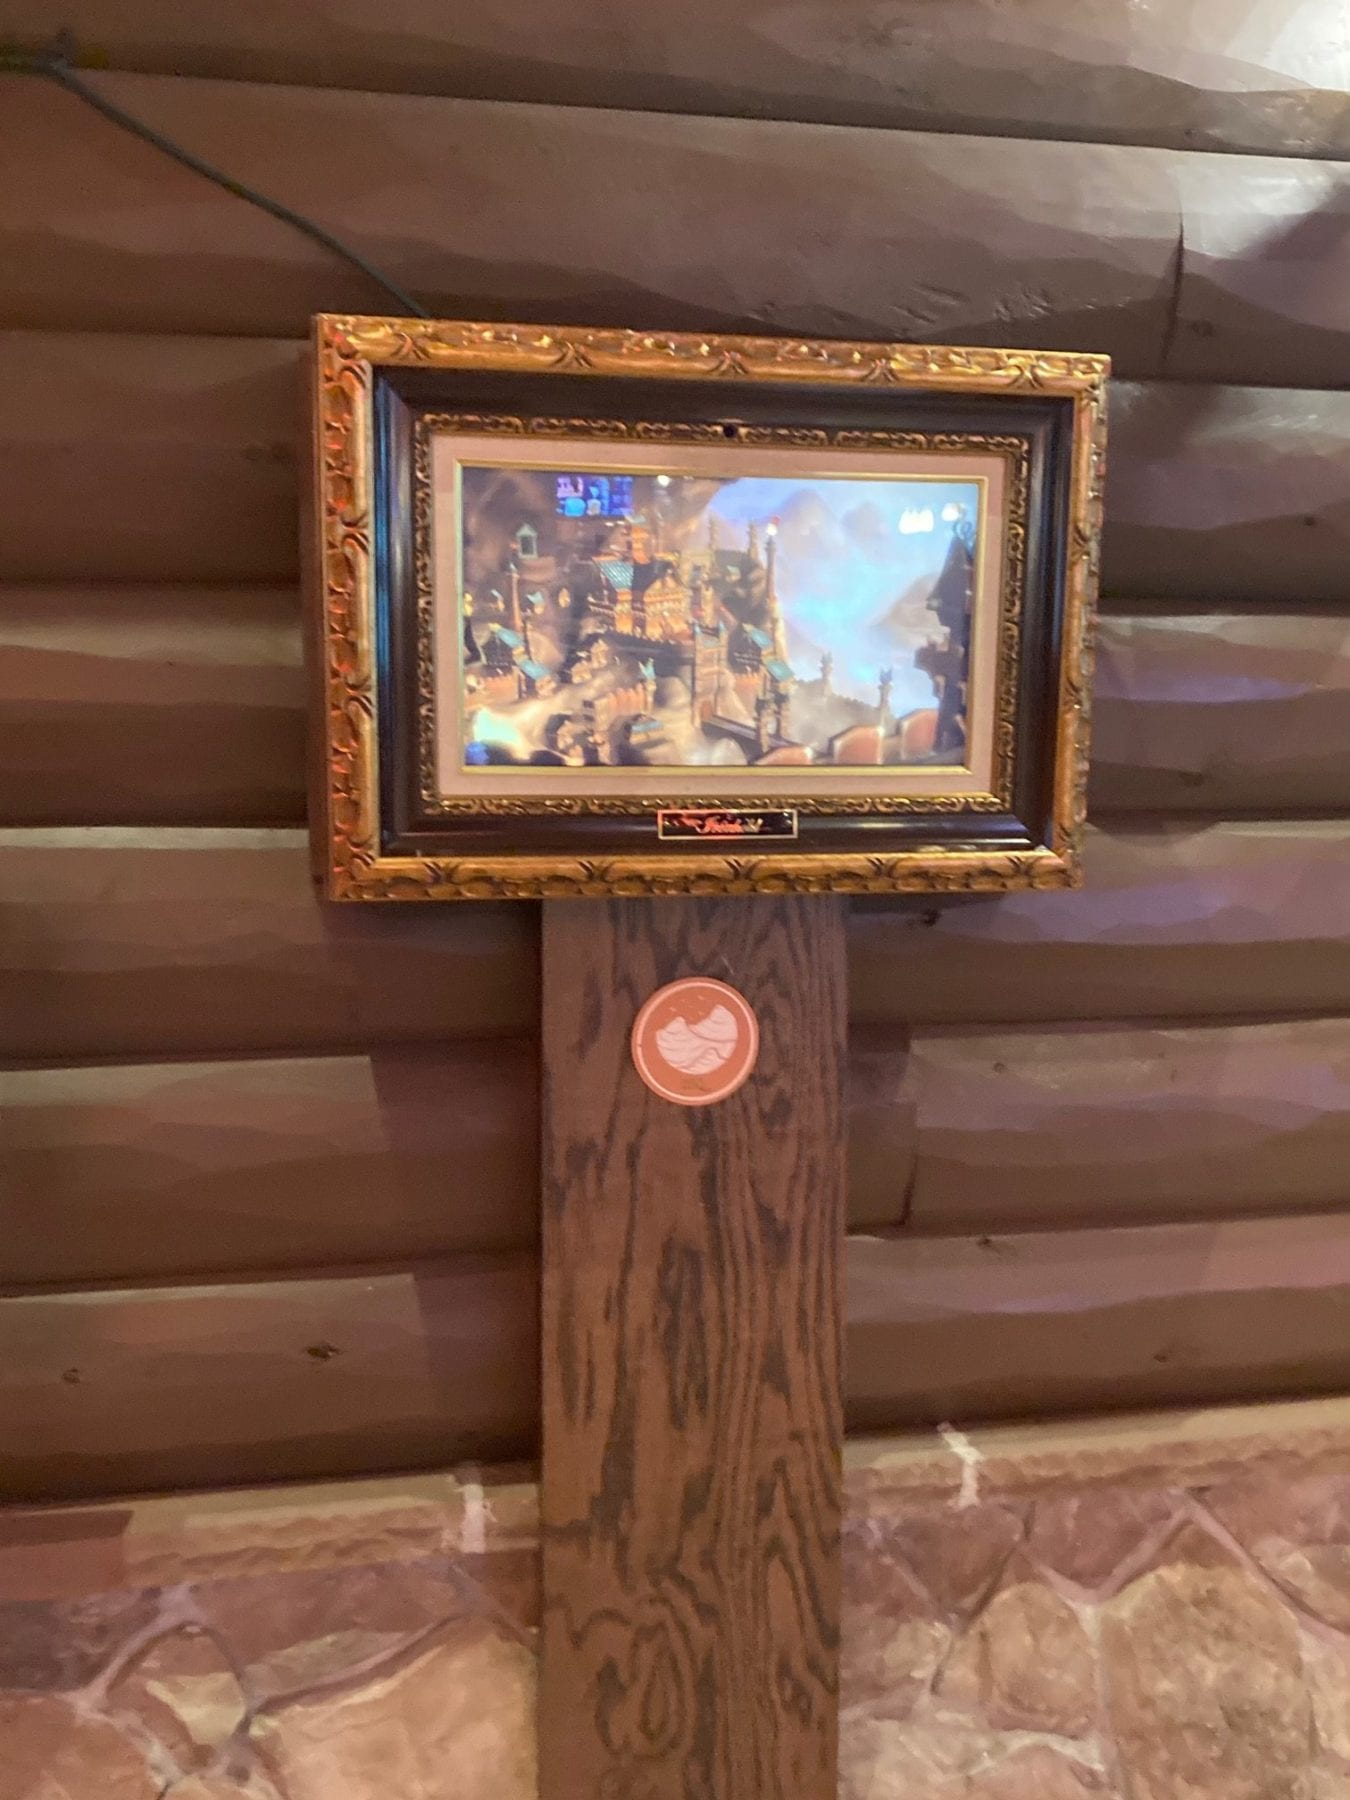 Magic Quest at Great Wolf Lodge